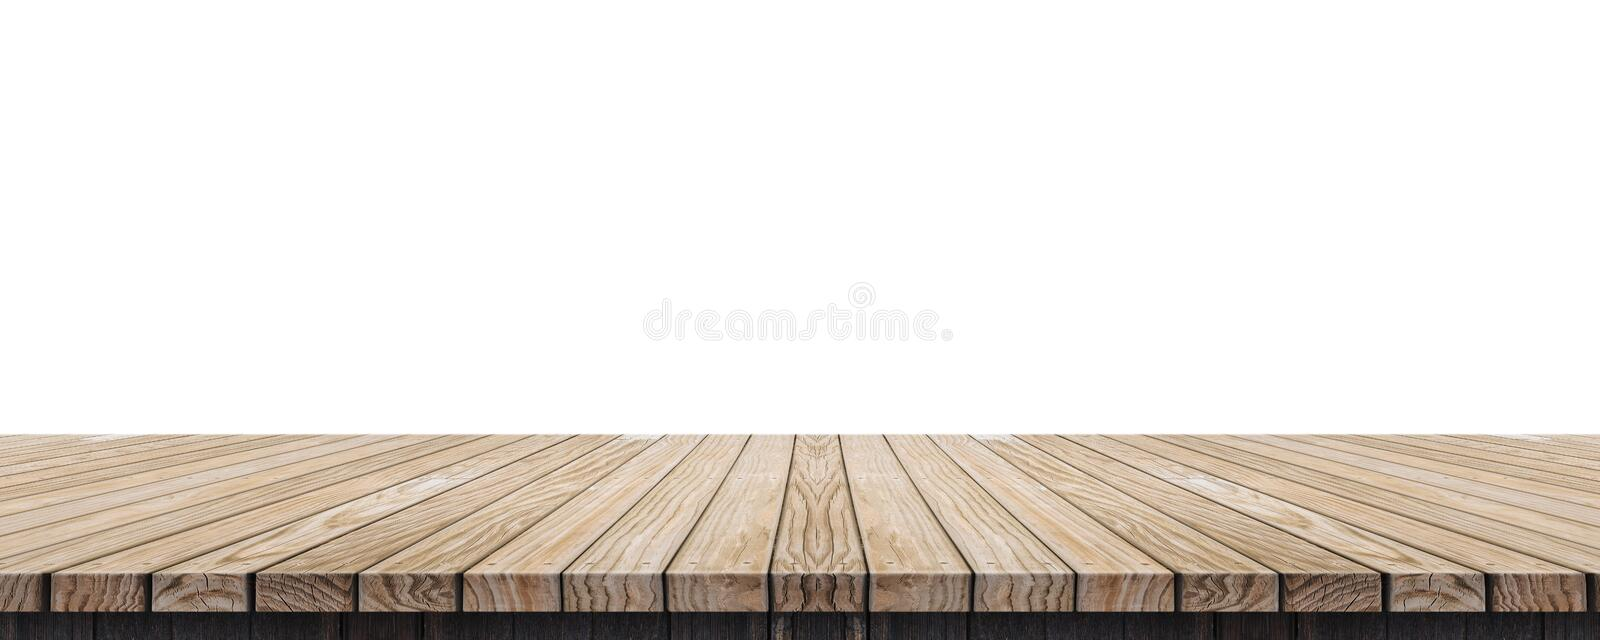 Empty old grunge wood plank table top isolated on white background,Use for display for montage of product and leave space for rep royalty free stock photo